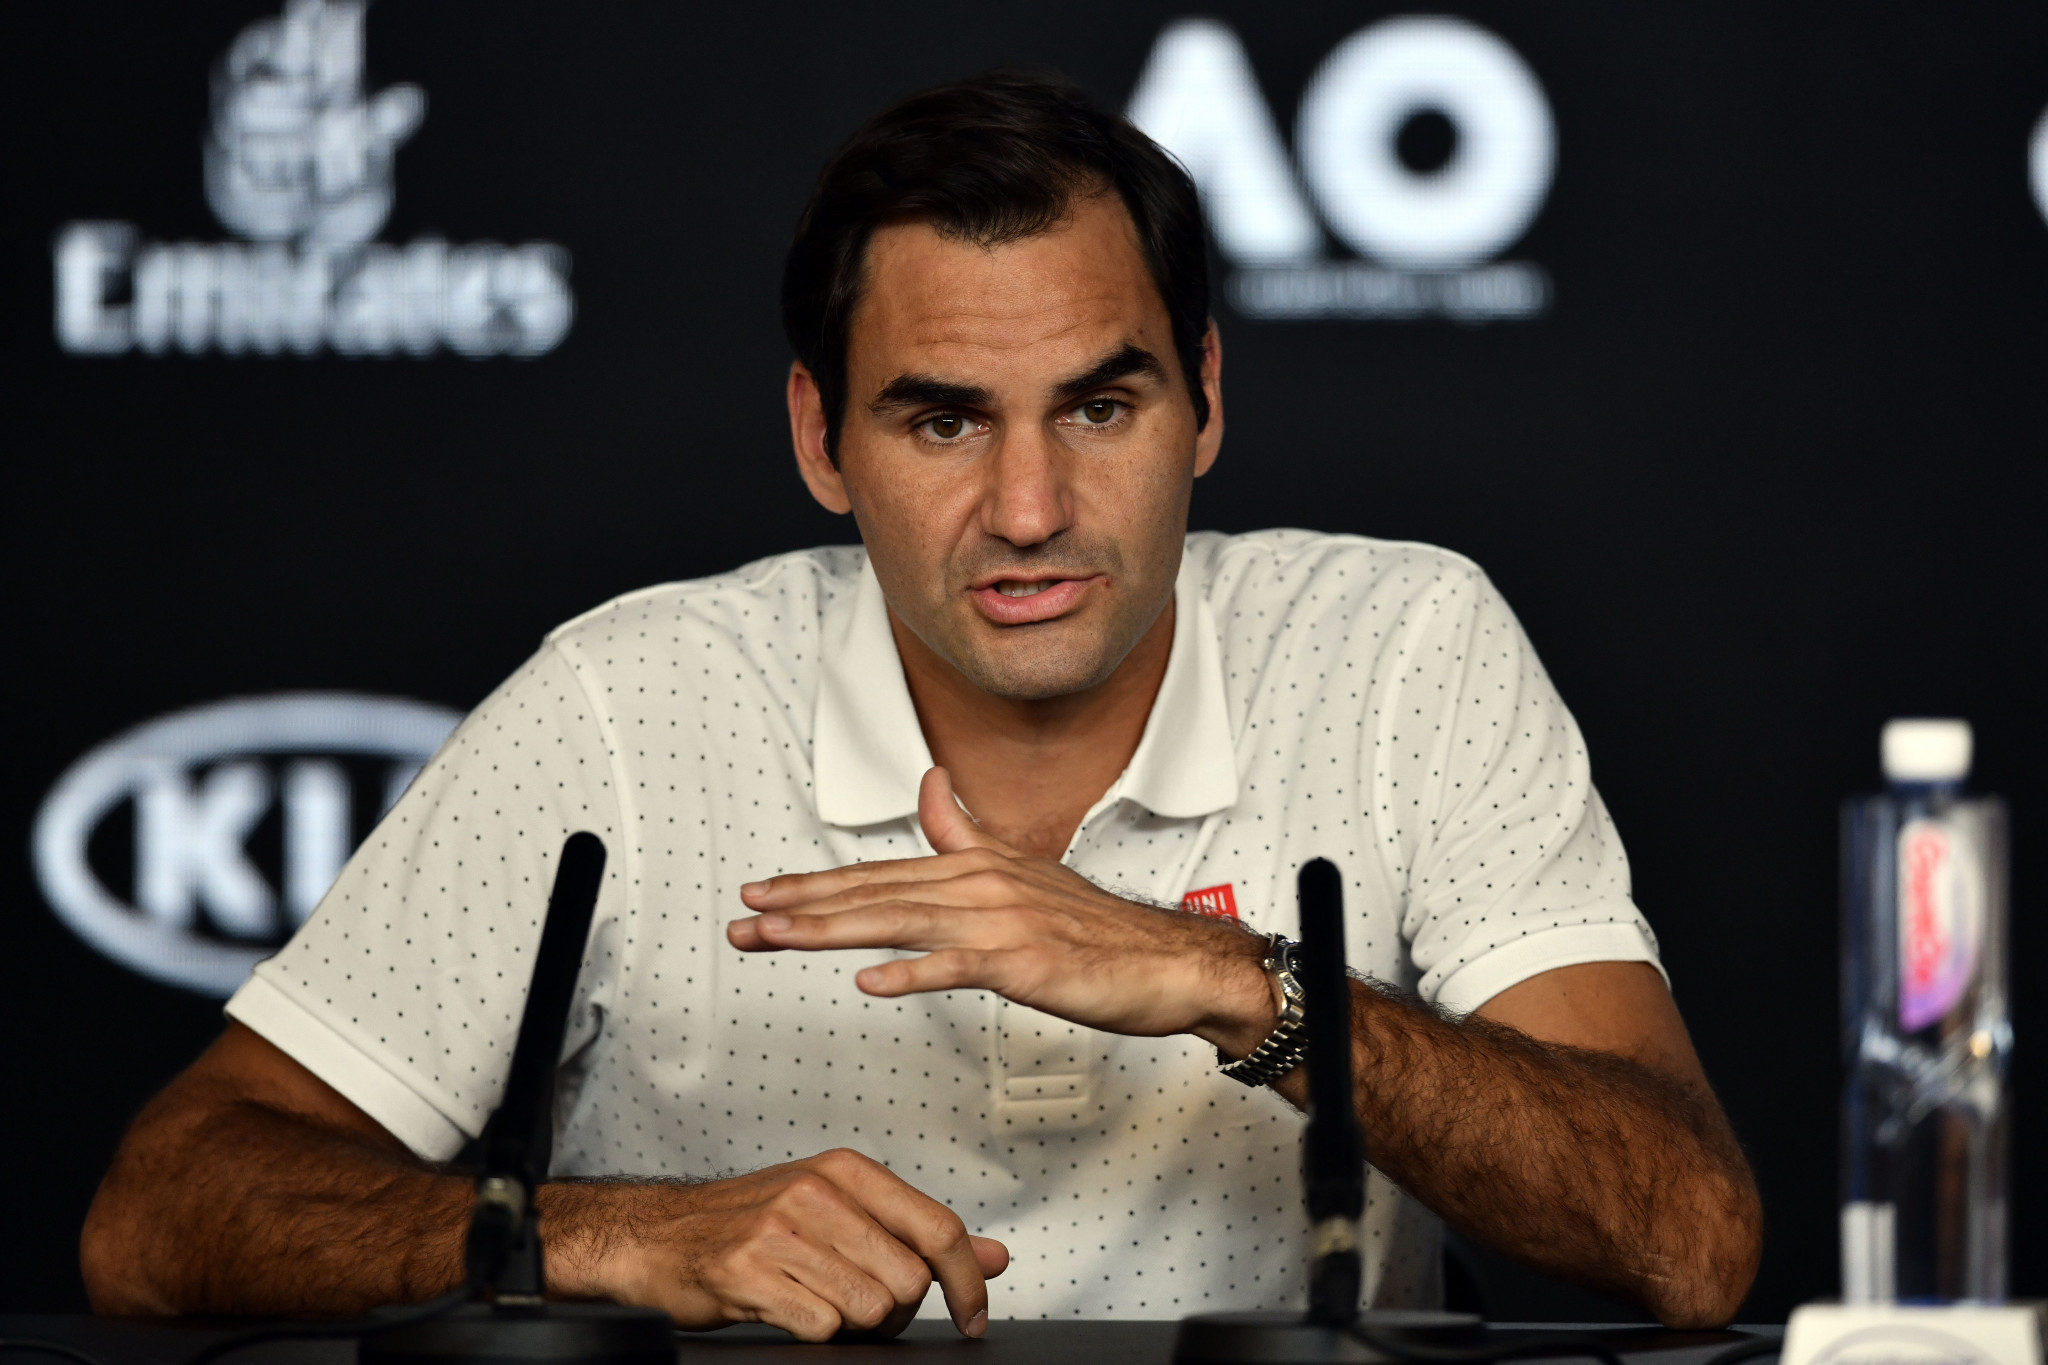 Roger Federer addresses the issue of air quality and athlete safety in a press conference ahead of the Australian Open tennis competition that begins tomorrow in Melbourne ©Getty Images